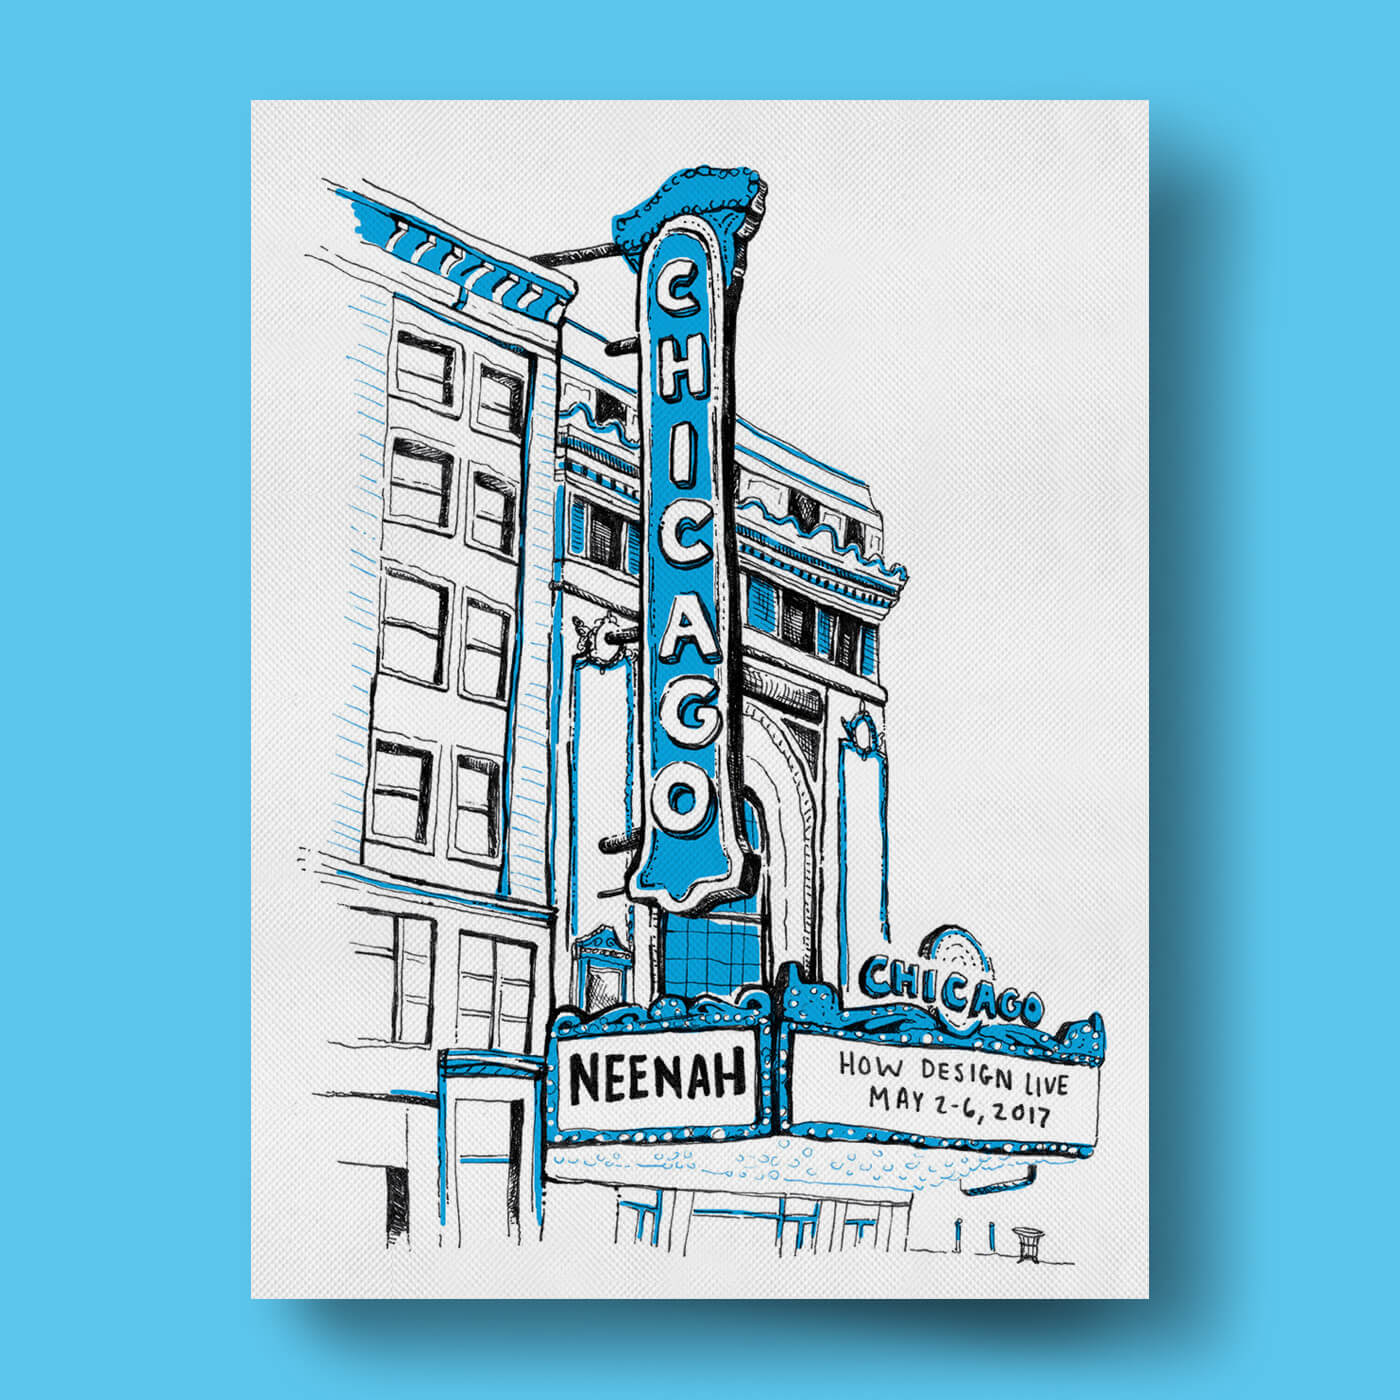 Neenah Presents Chicago - An illustrated guide of the Windy City, featuring seven maps of how to experience Chicago for designers, sightseers, pizza enthusiasts and more.View Project →